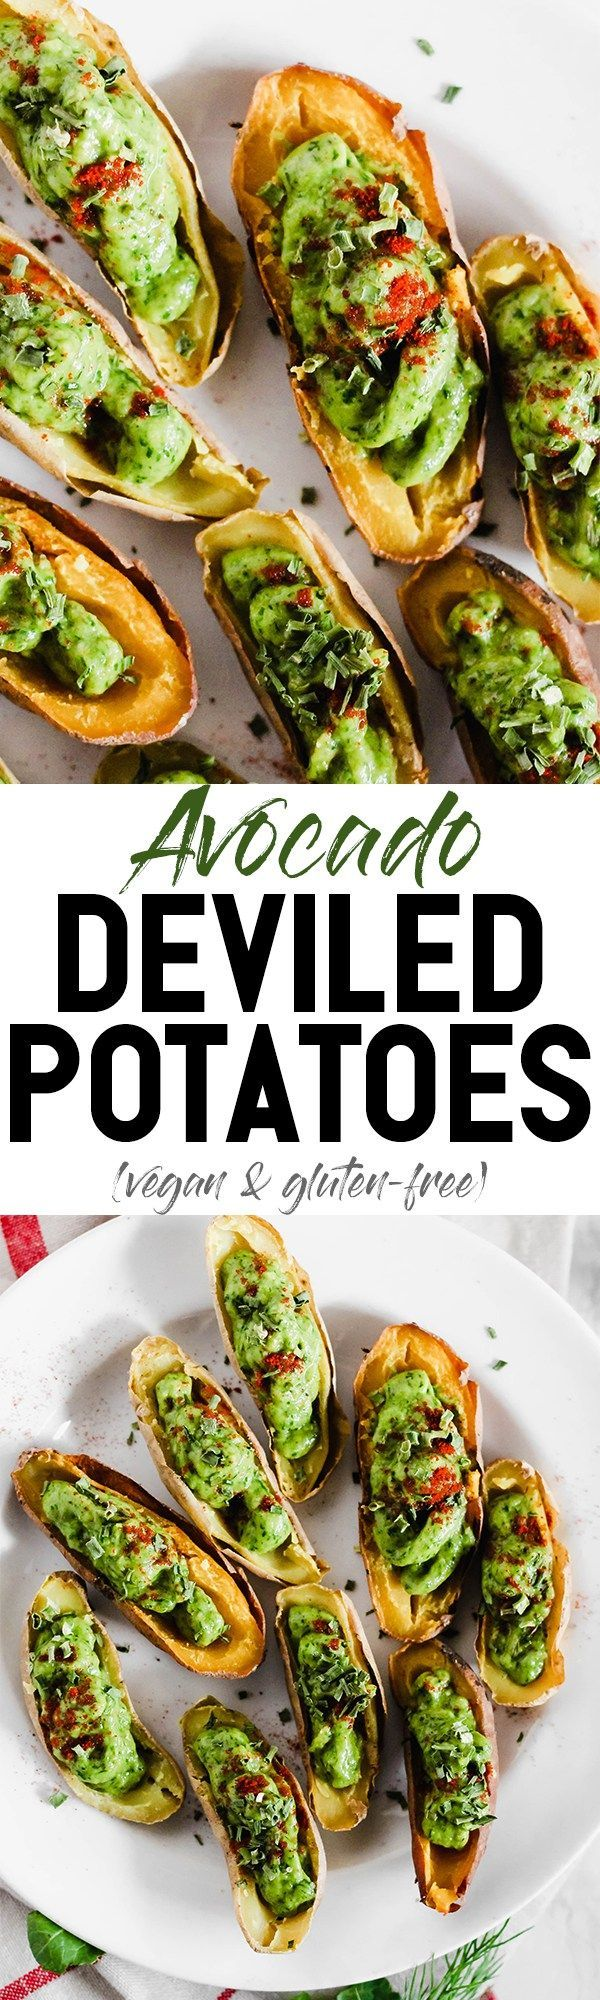 Your game day appetizer tray is not complete without these Avocado Deviled Potatoes & Creamy Avocado Pesto Pinwheels—easy plant-based finger foods for kids and adults alike! #NotJustGuac #sponsor @MissionAvocados @TaylorFarms